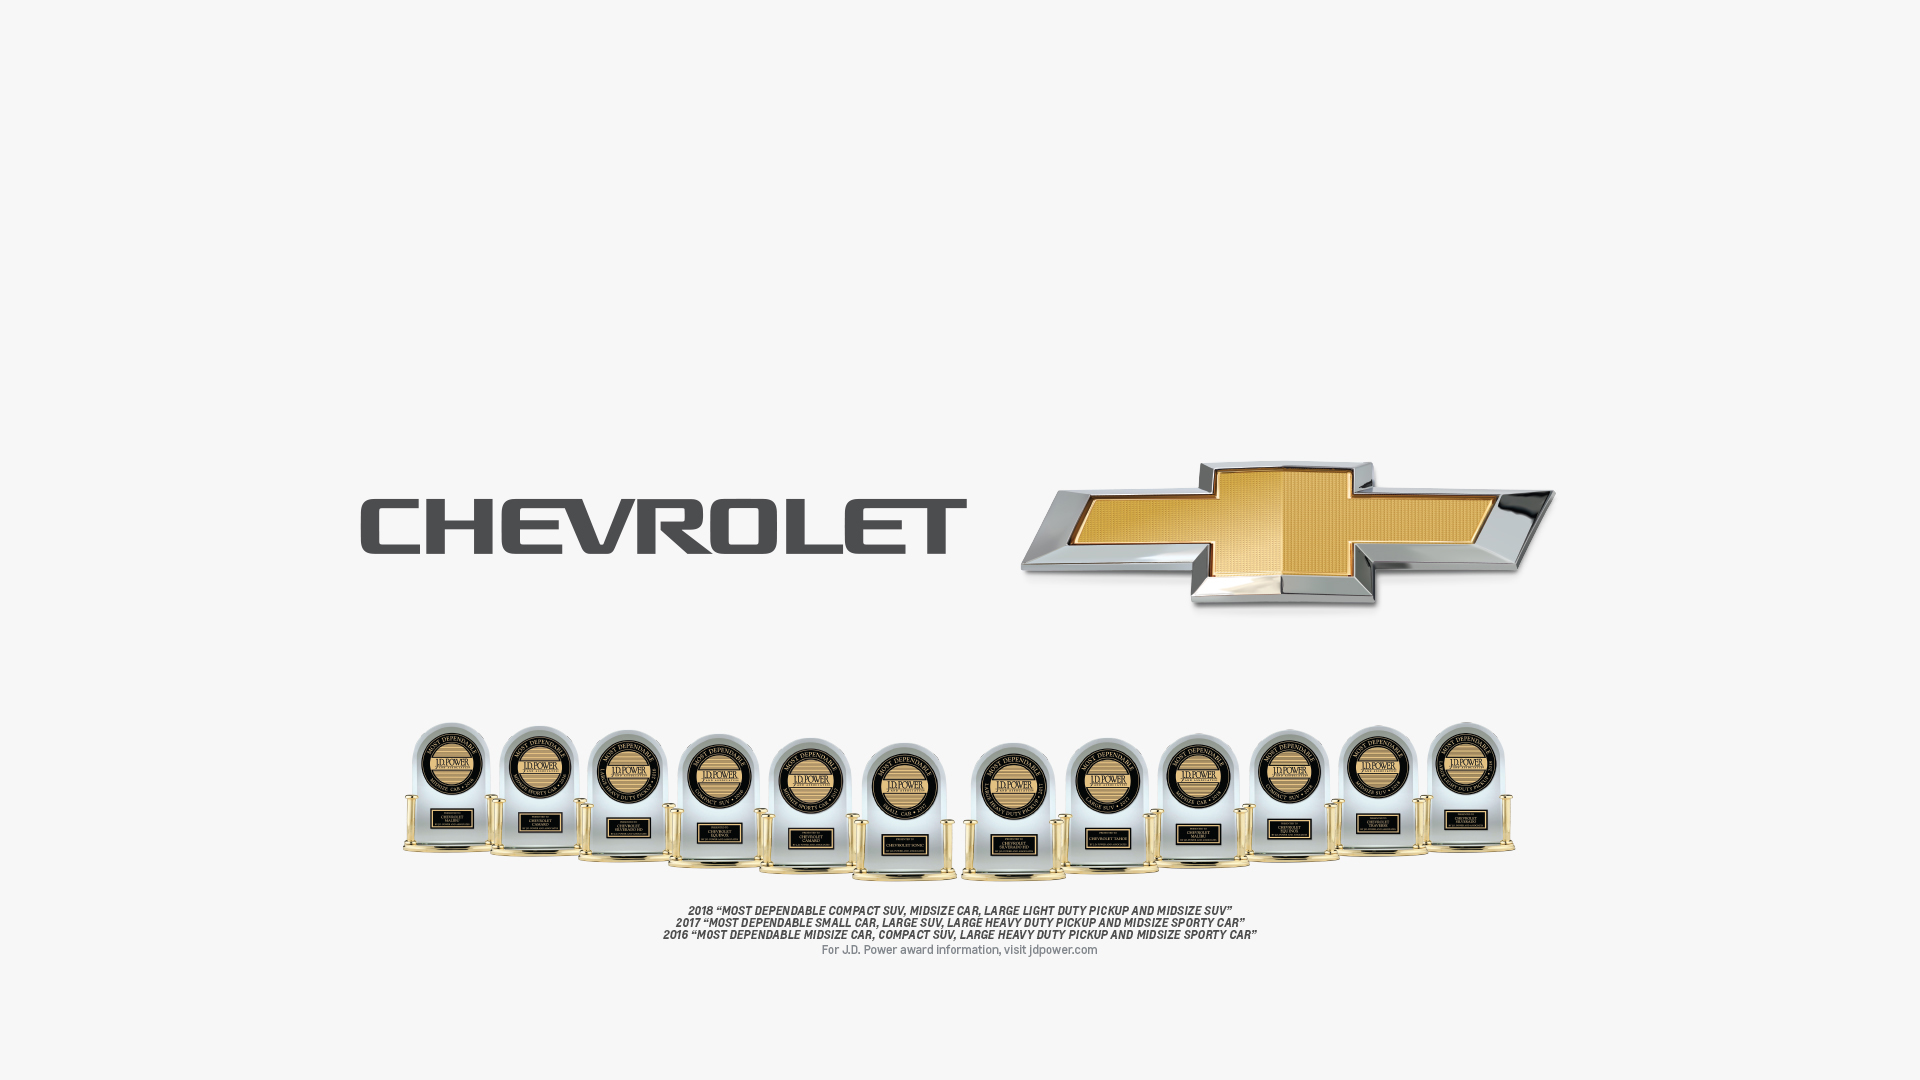 Chevrolet Is J D  Power's Most Awarded Brand